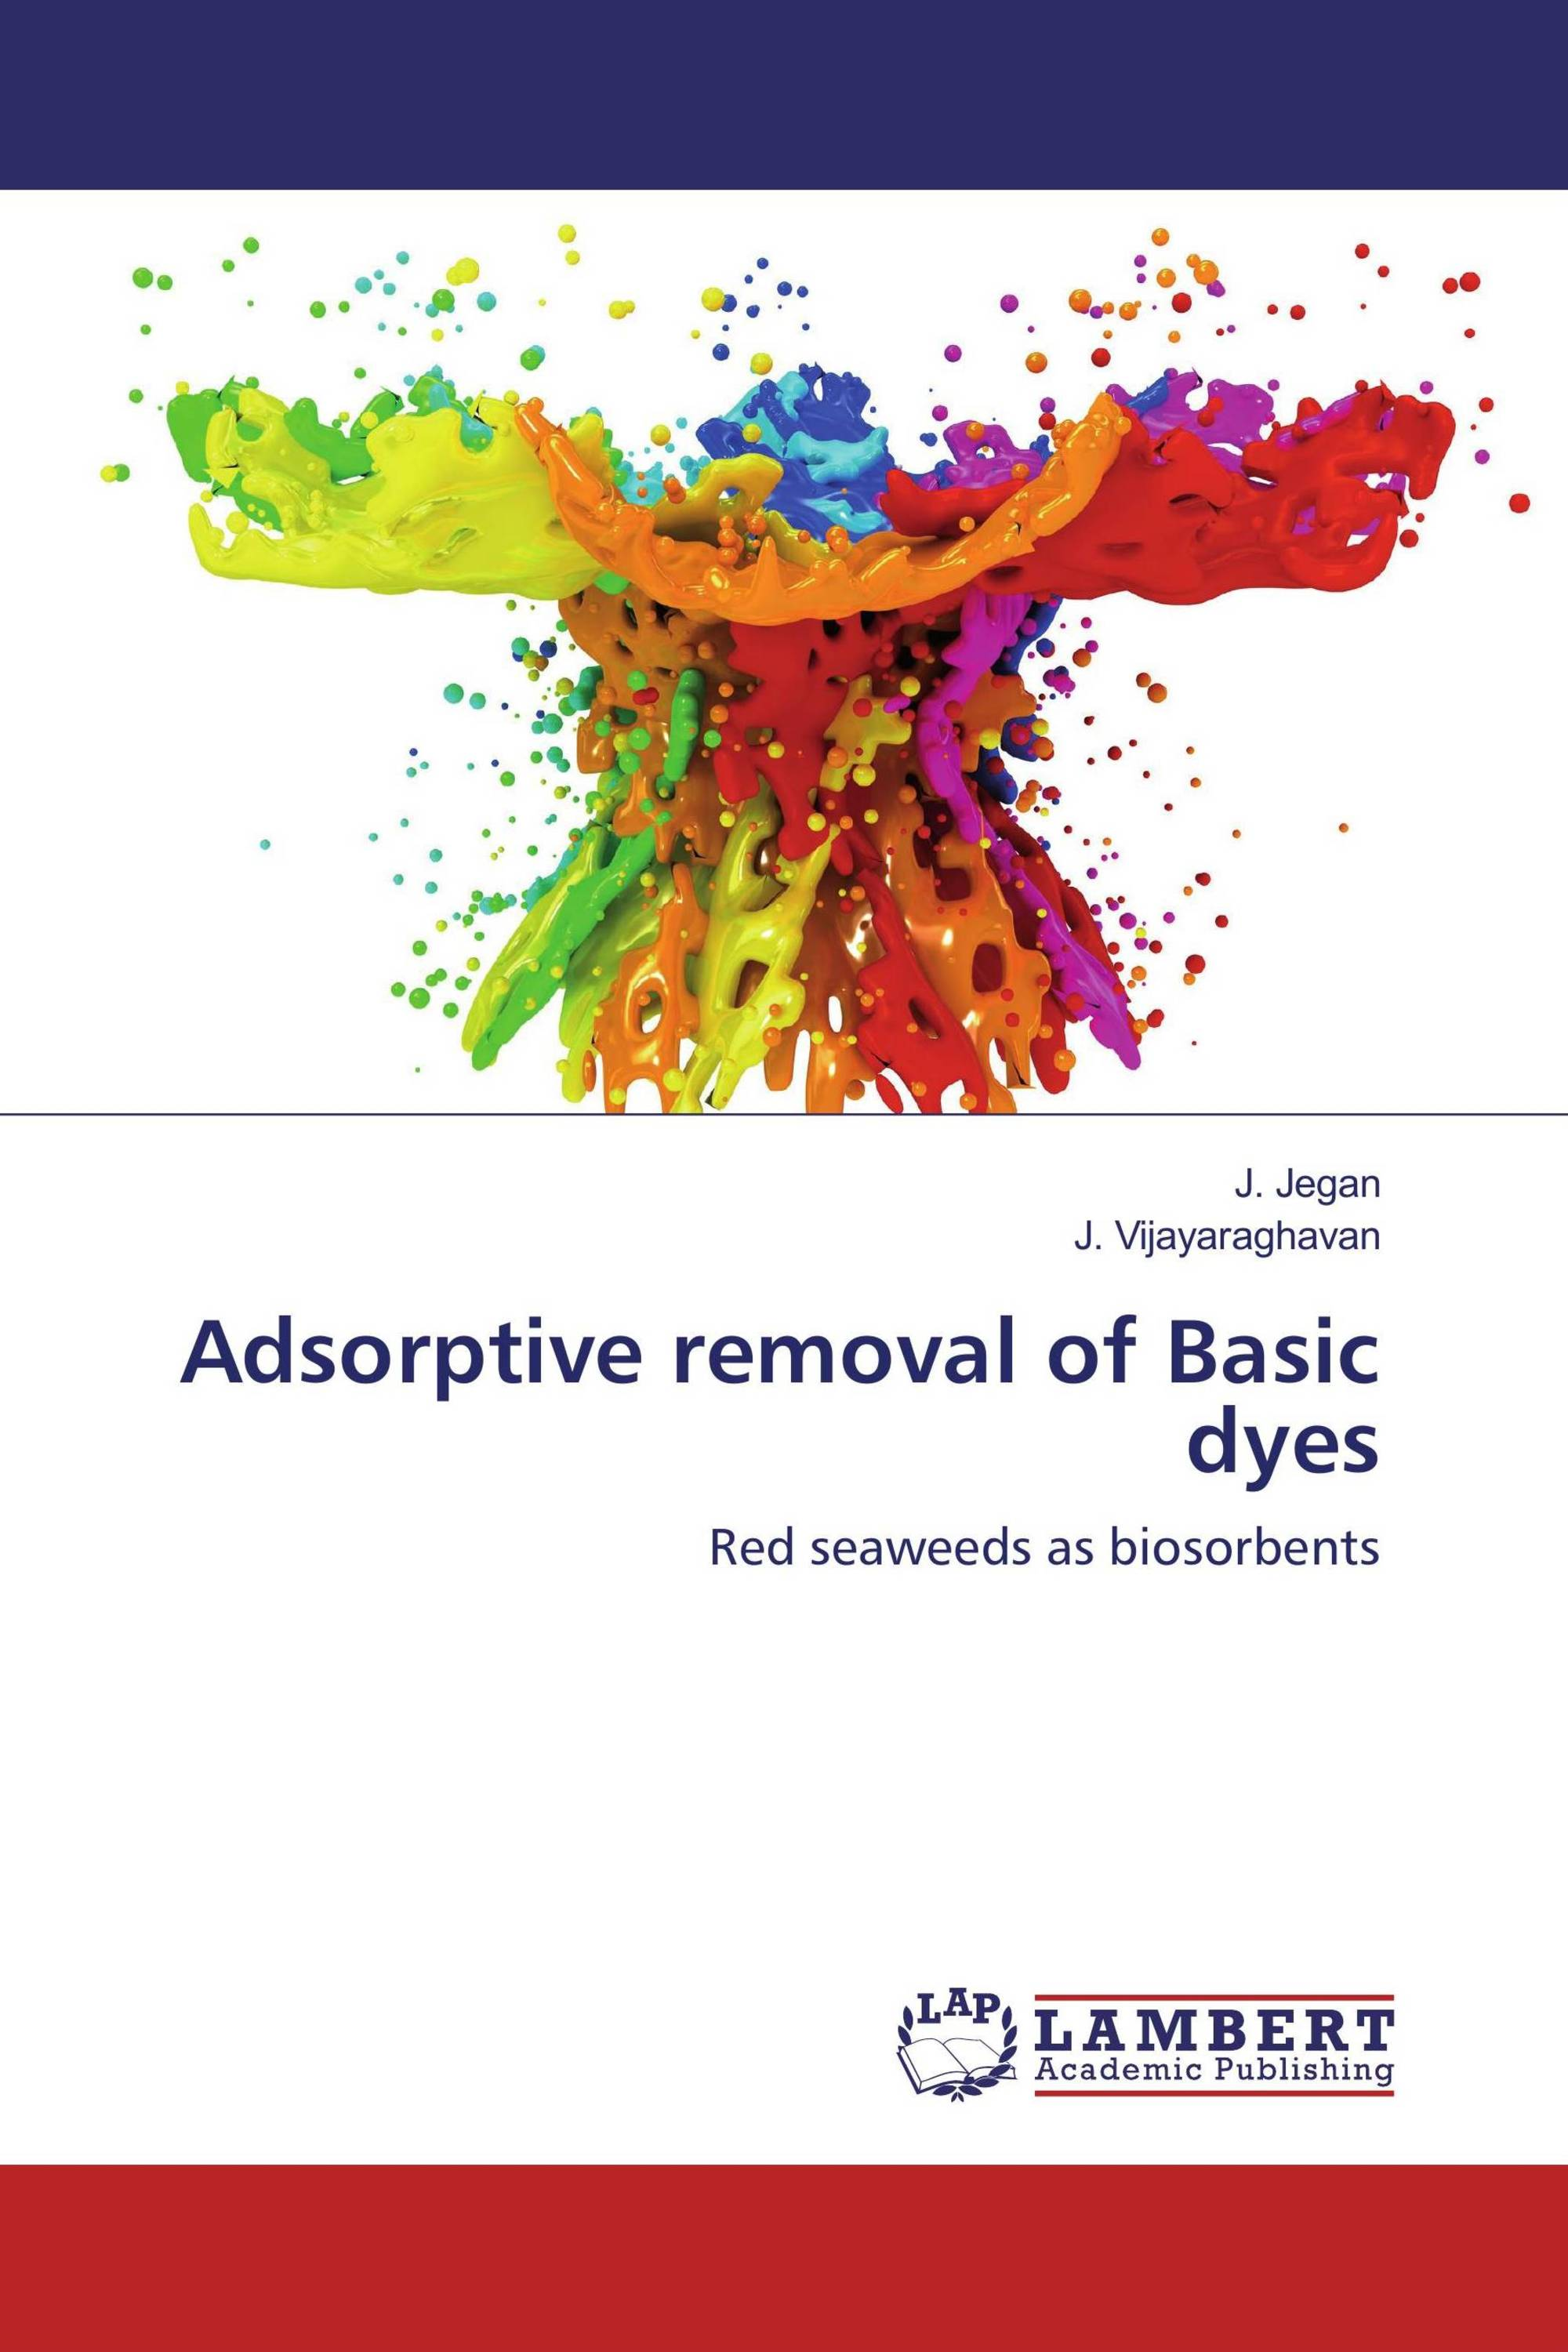 thesis on dye removal Removal of amido black dye by adsorption with zeolite synthesized from fly ash thesis submitted in partial fulfillment of the.